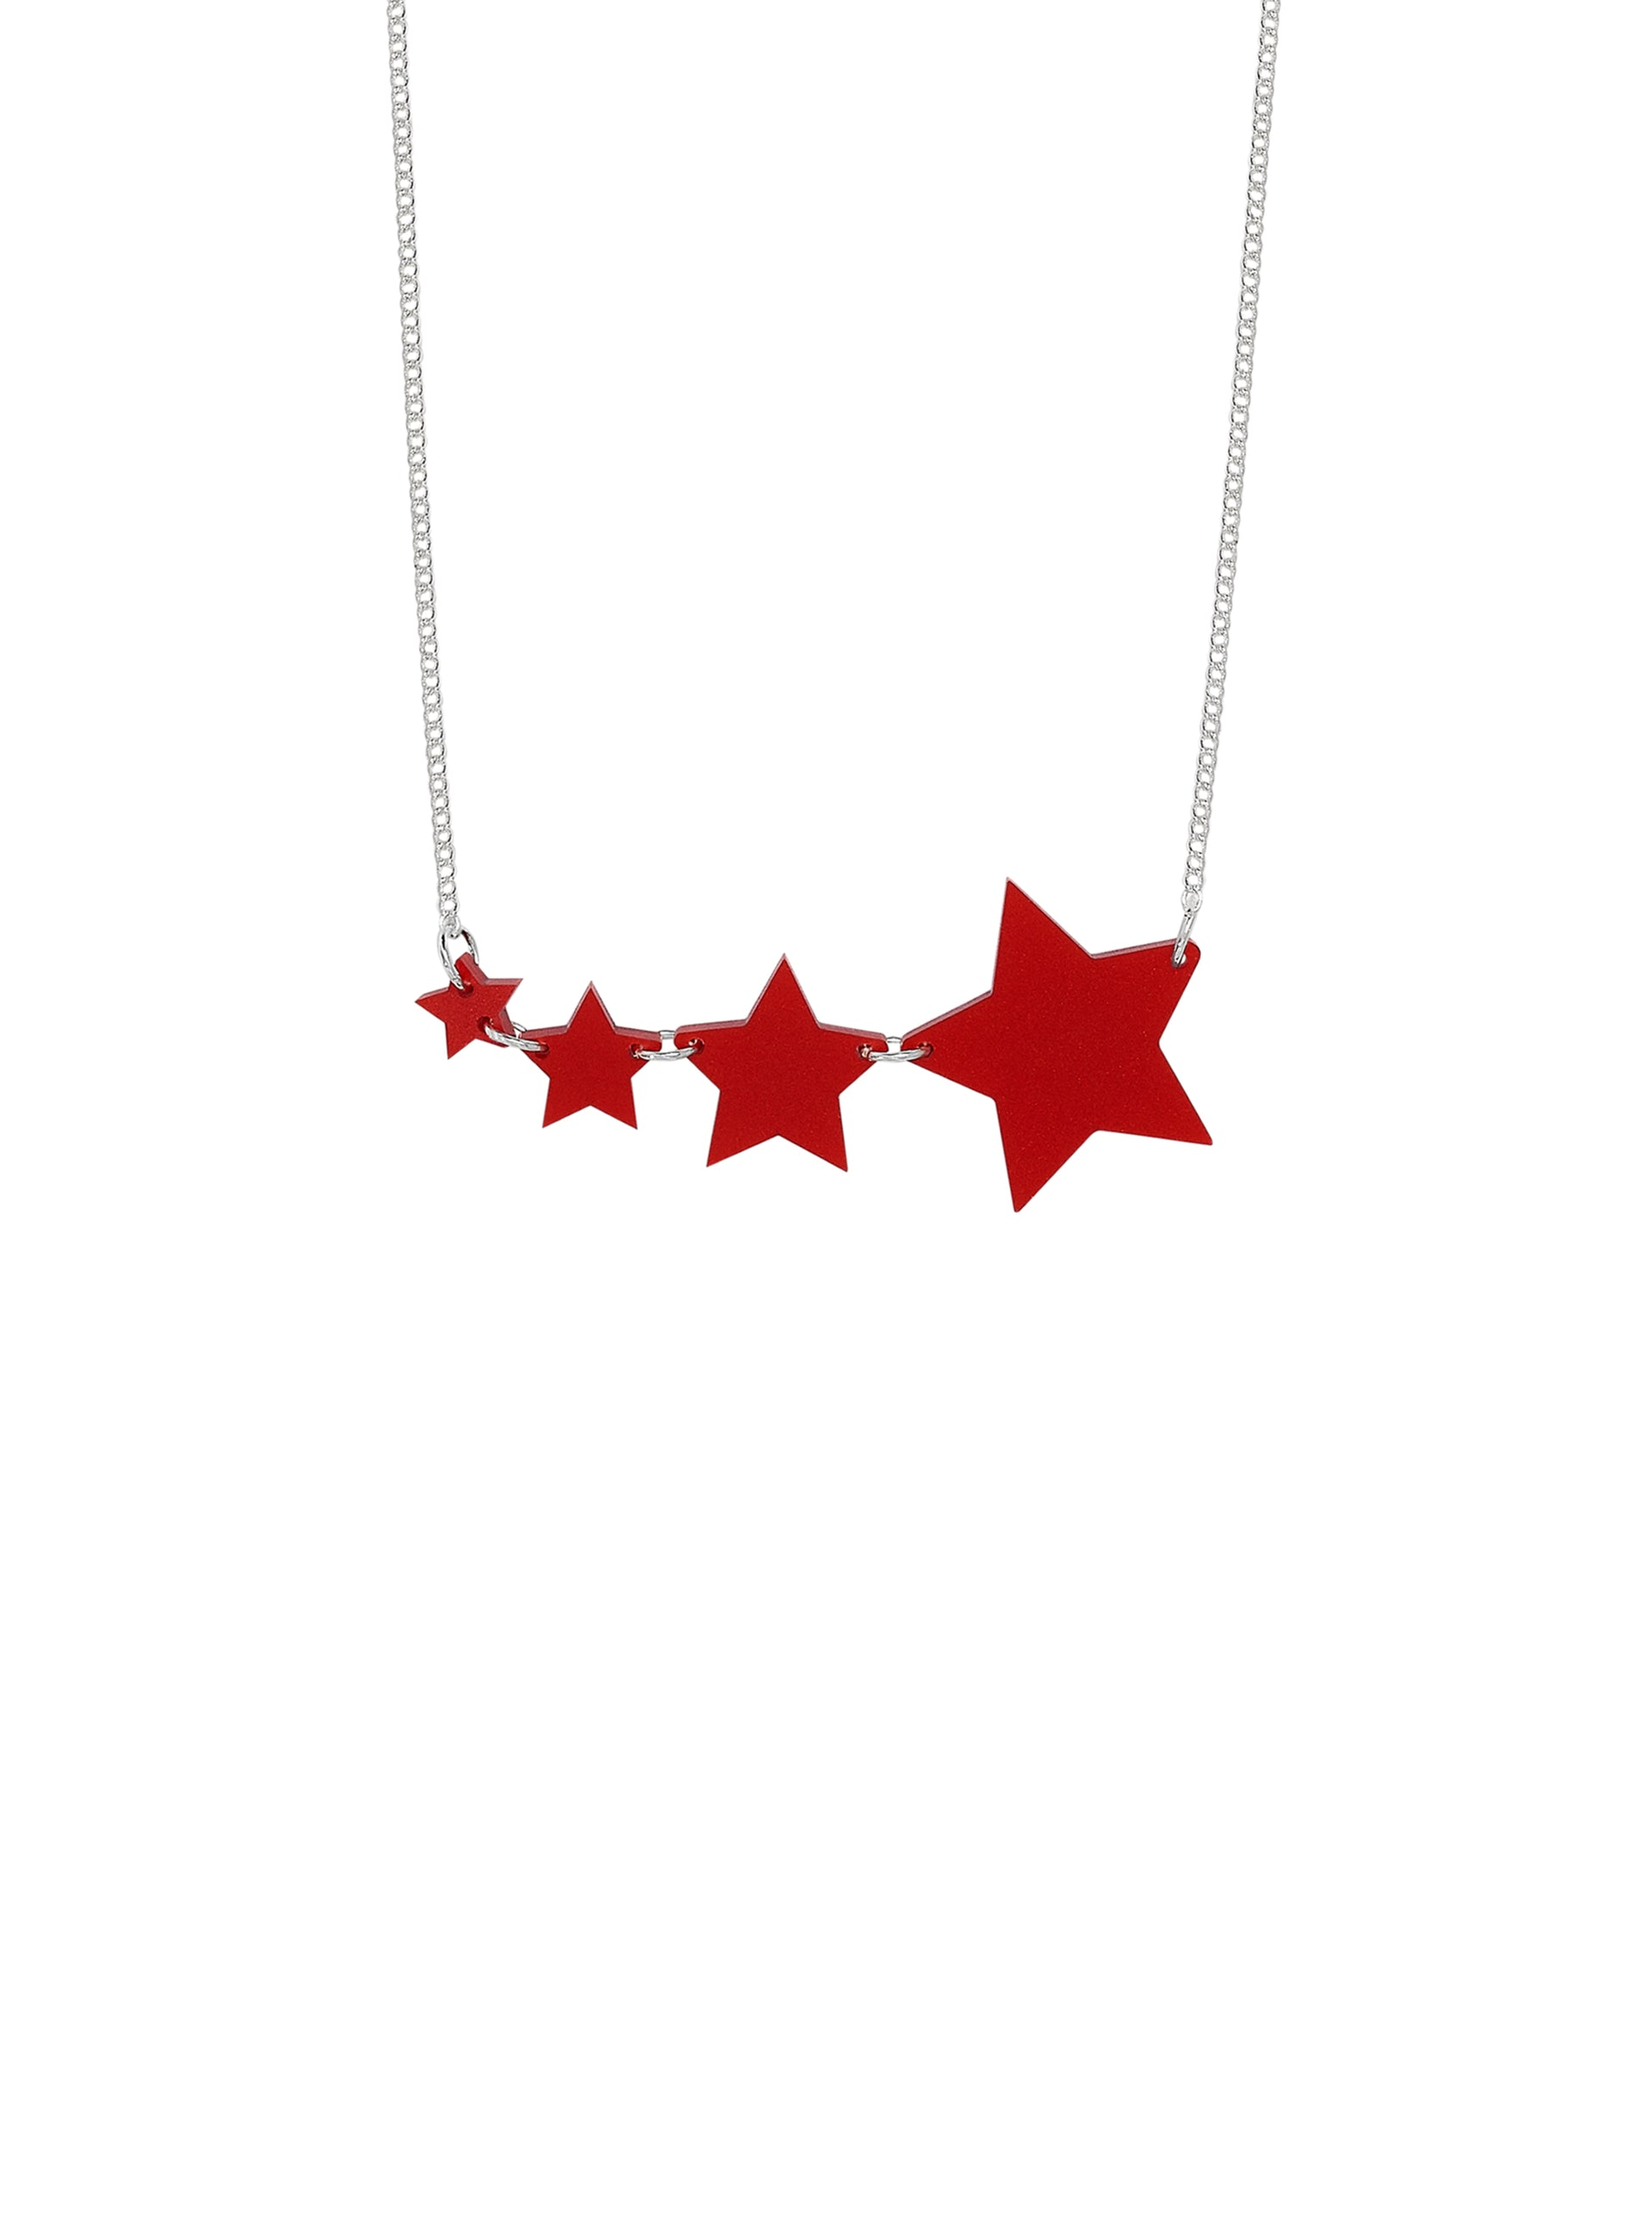 Shooting-Star-Necklace-Ruby-Shimmer